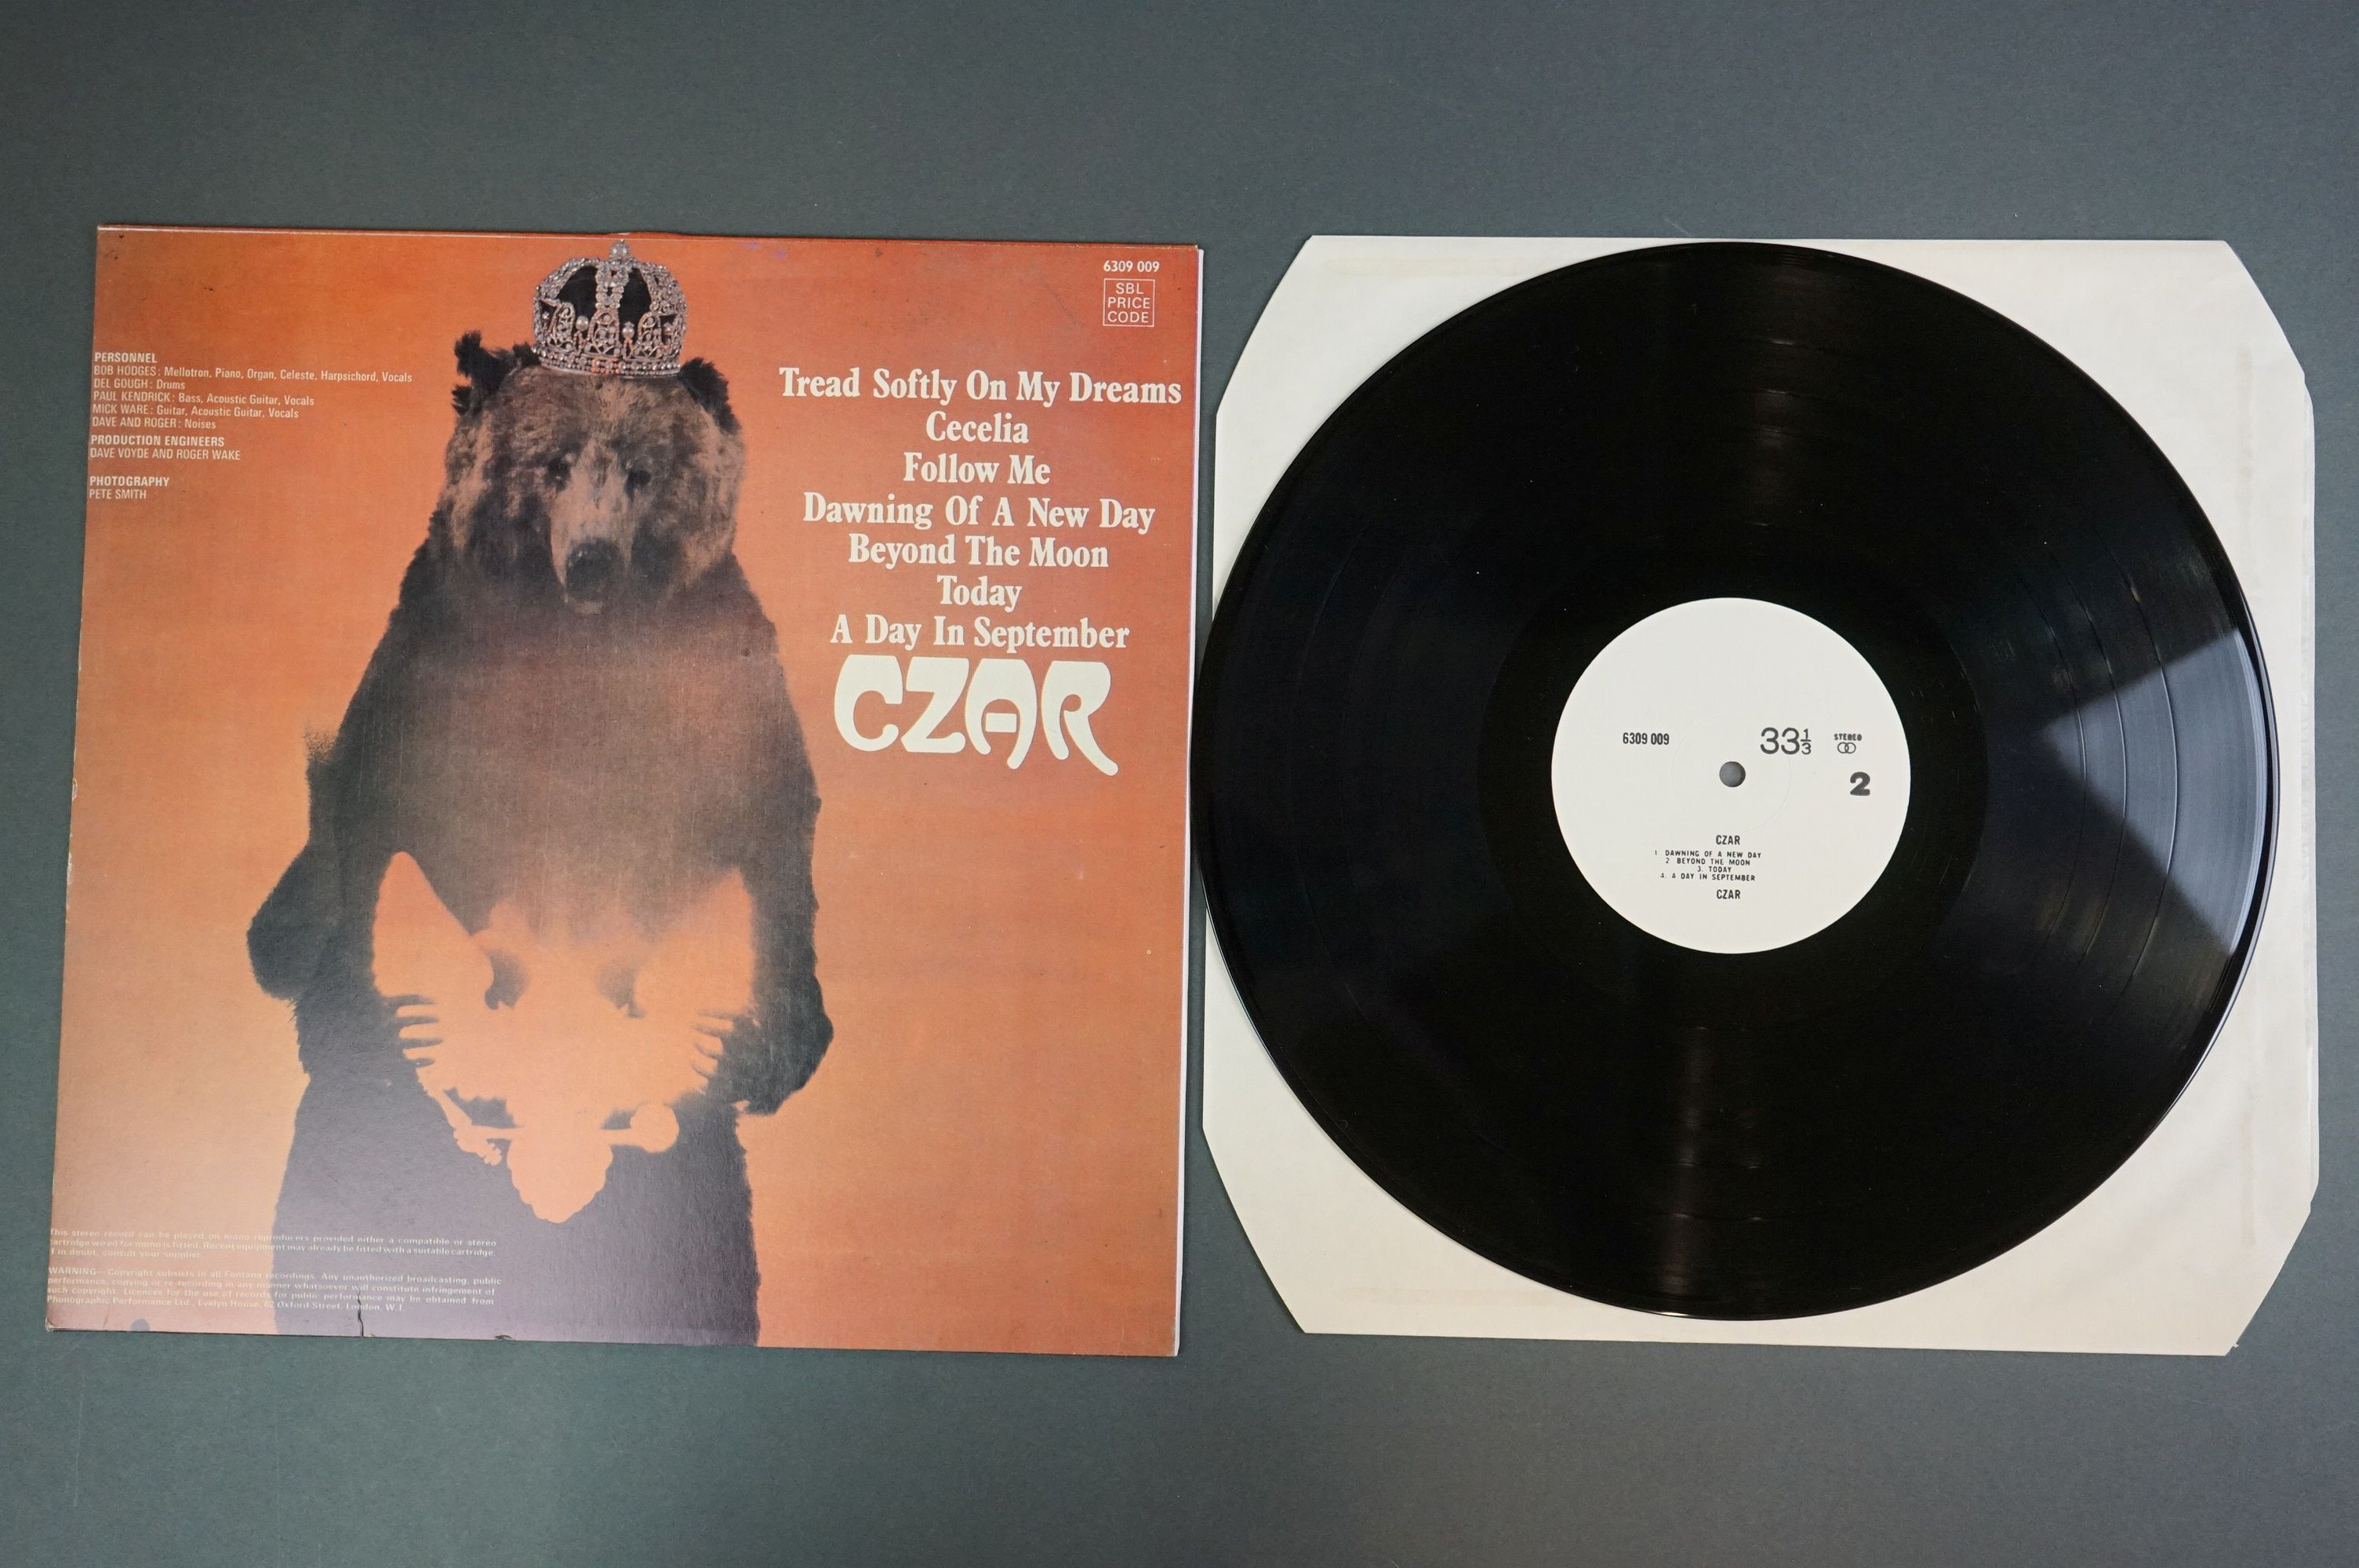 Vinyl - Czar self titled 6360009 unofficial release white album, with titles 33 and one third and - Image 3 of 3